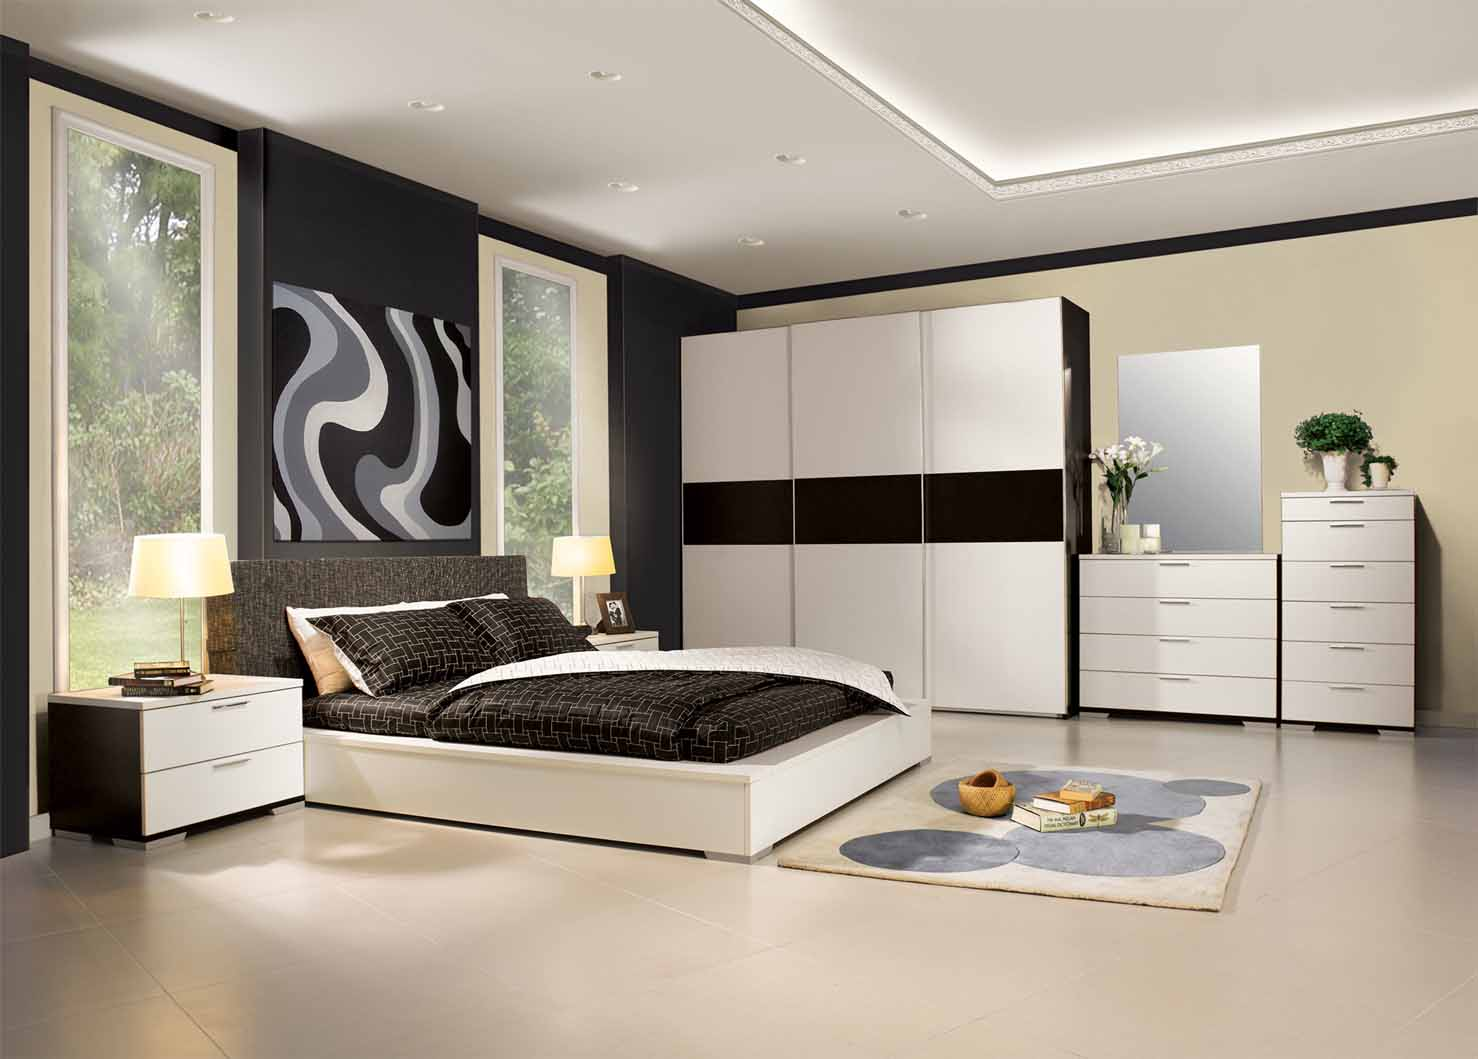 Awesome bedrooms ideas pictures 2014 decorating bedrooms for Room design 2014